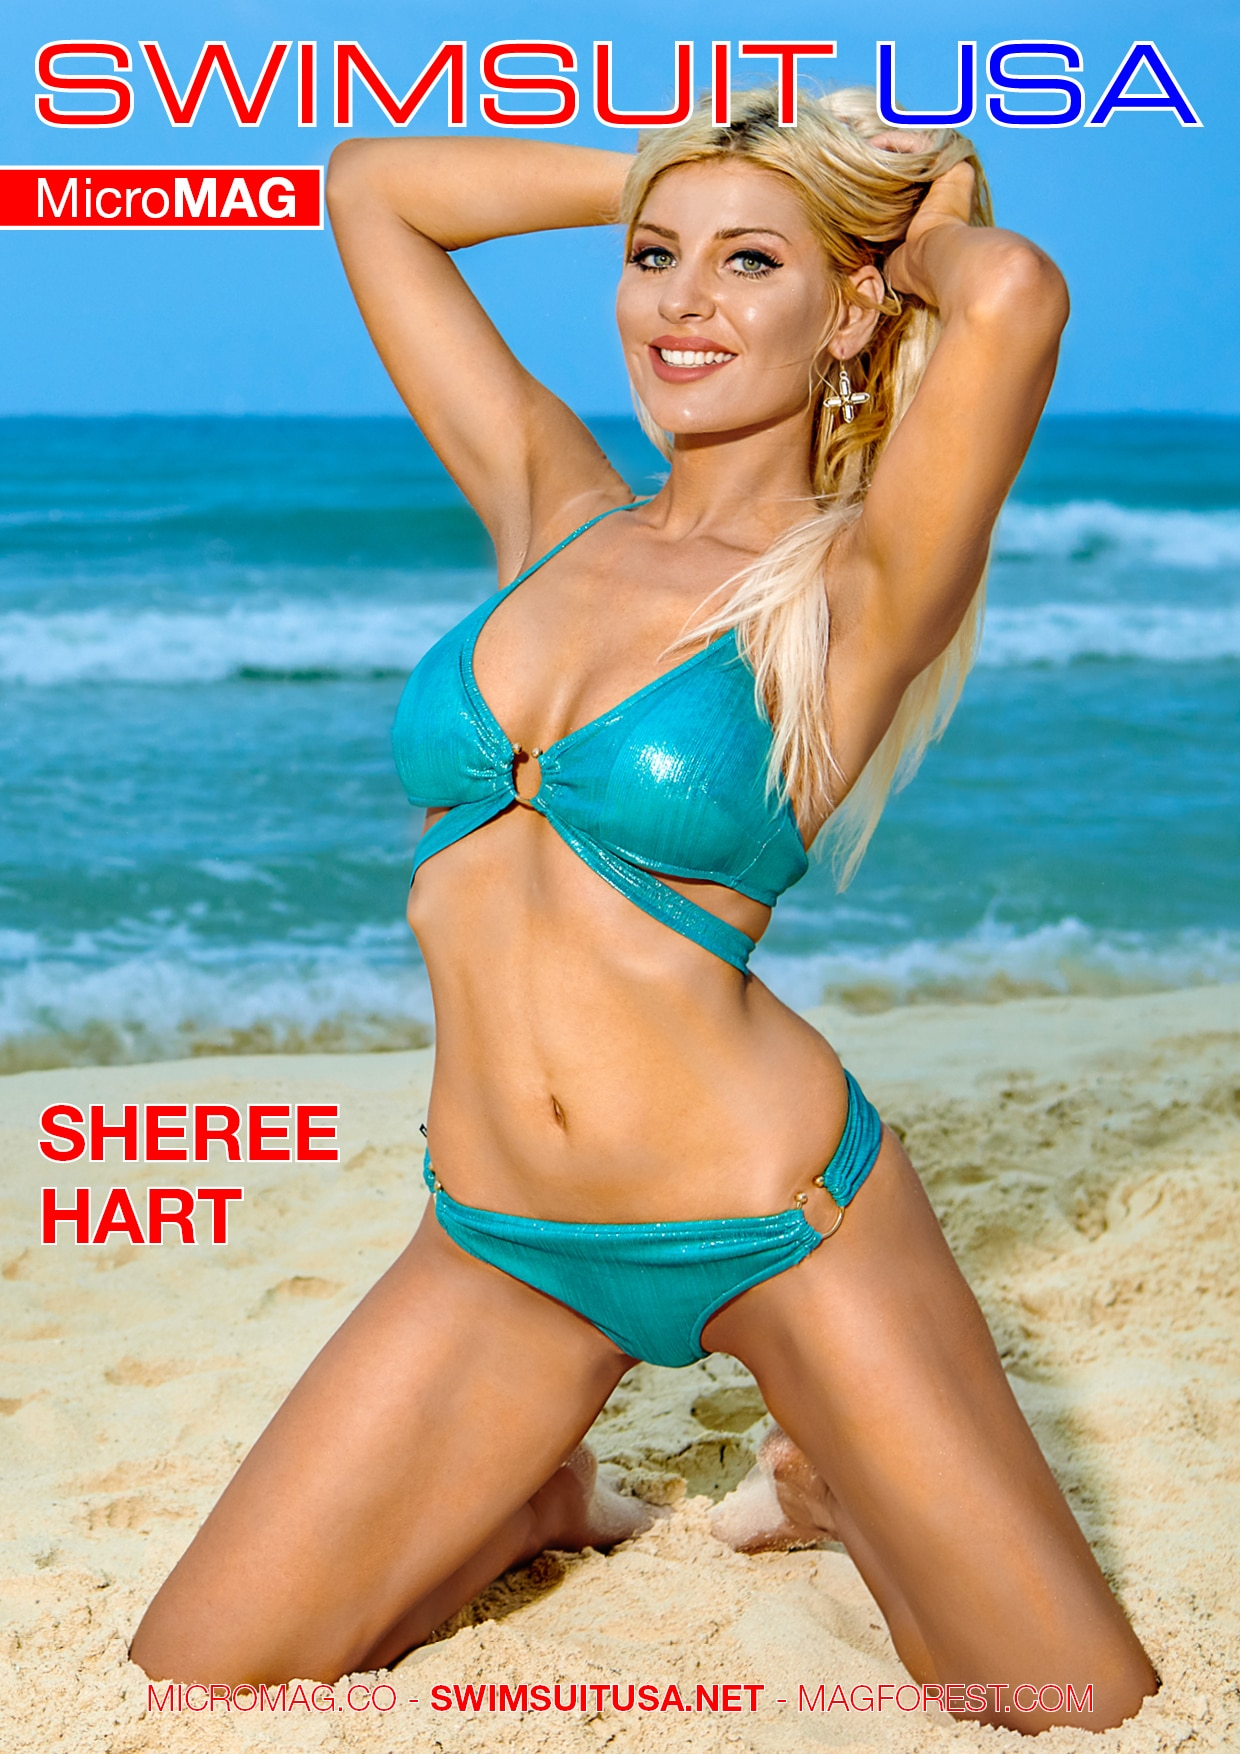 Swimsuit USA MicroMAG - Sheree Hart 2